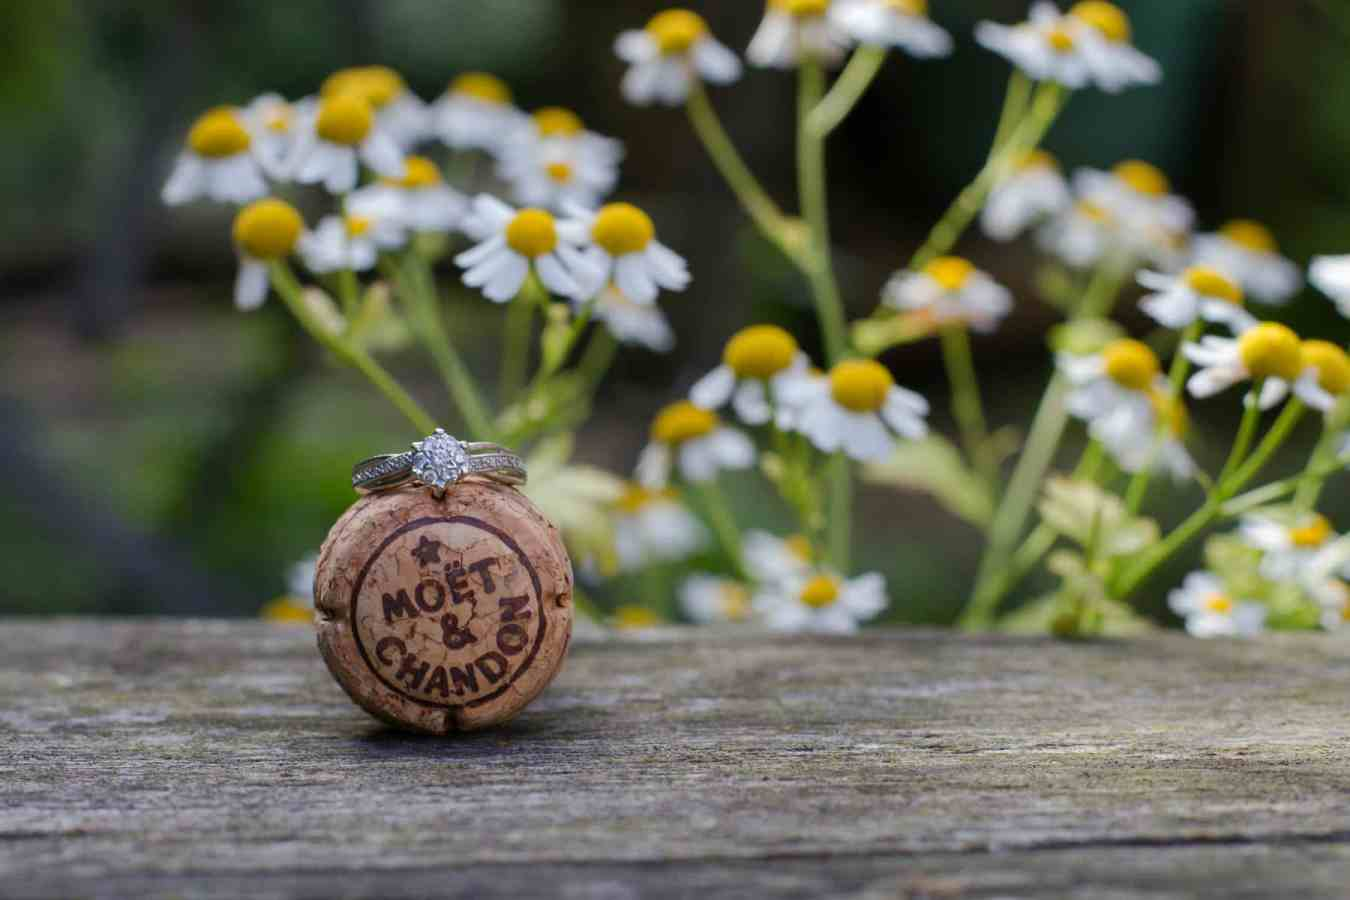 Engagement ring balanced on top of a champagne cork with daisies in the background. Fife wedding